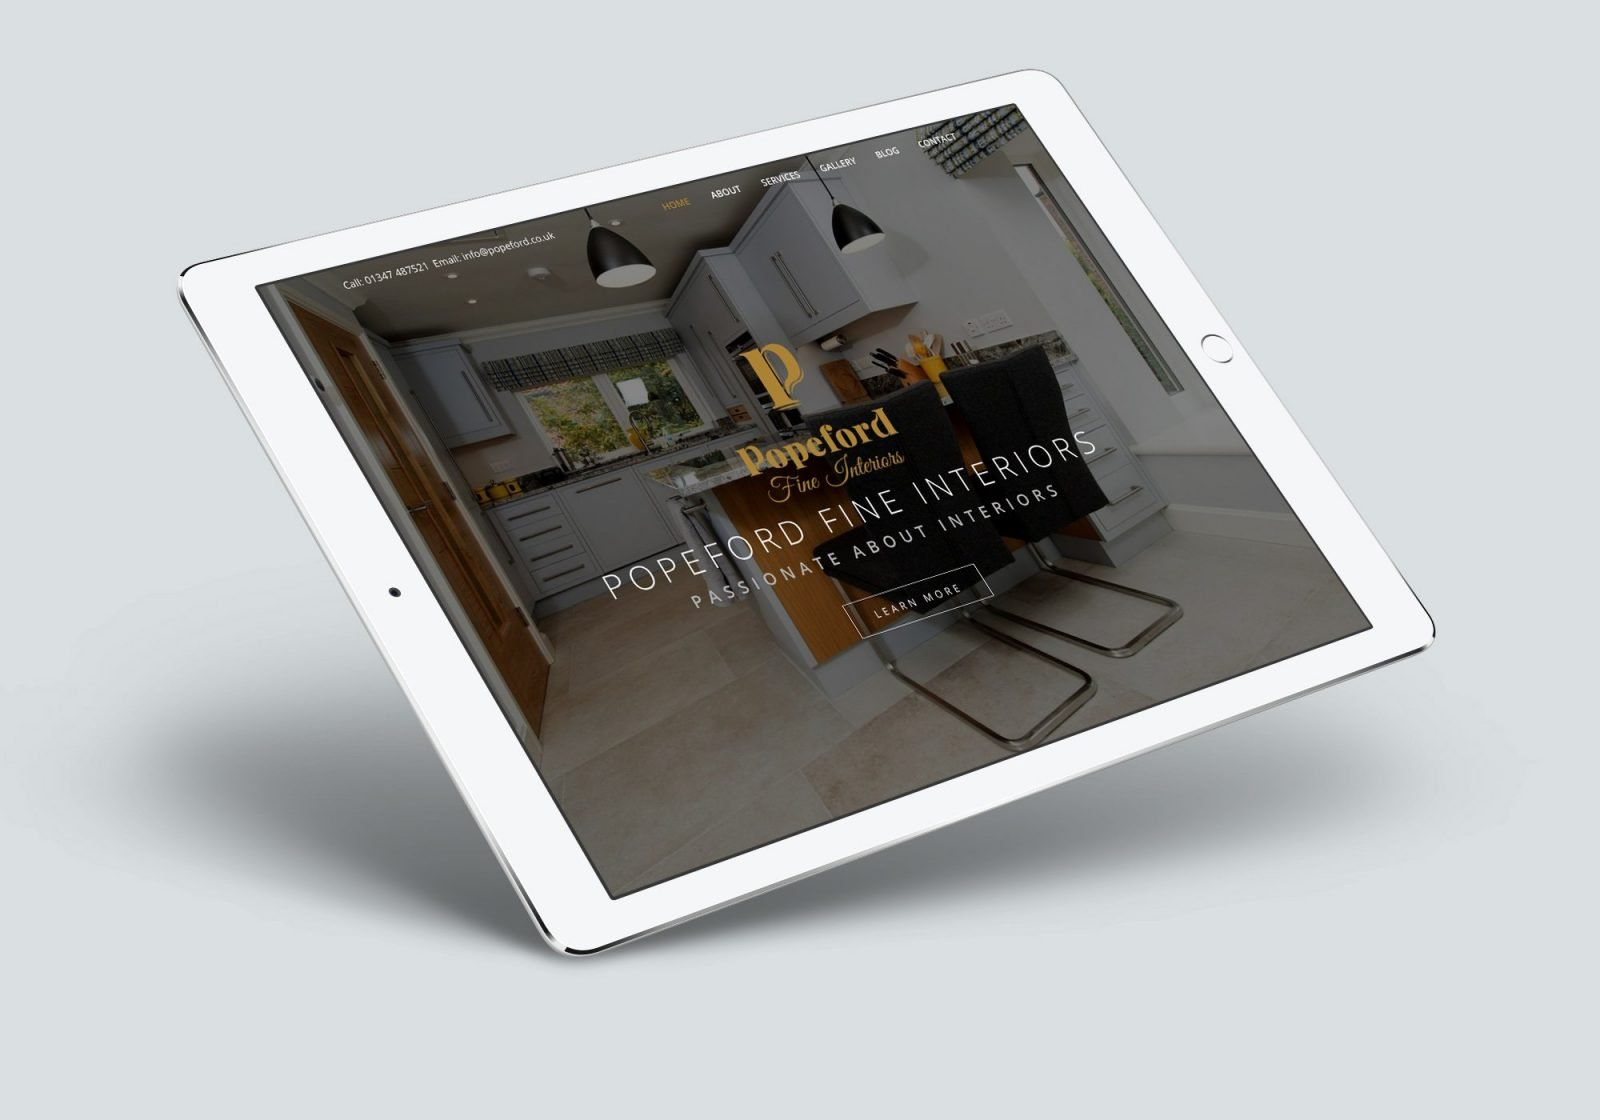 An ipad showing the home page for Popeford Interior Designers website design